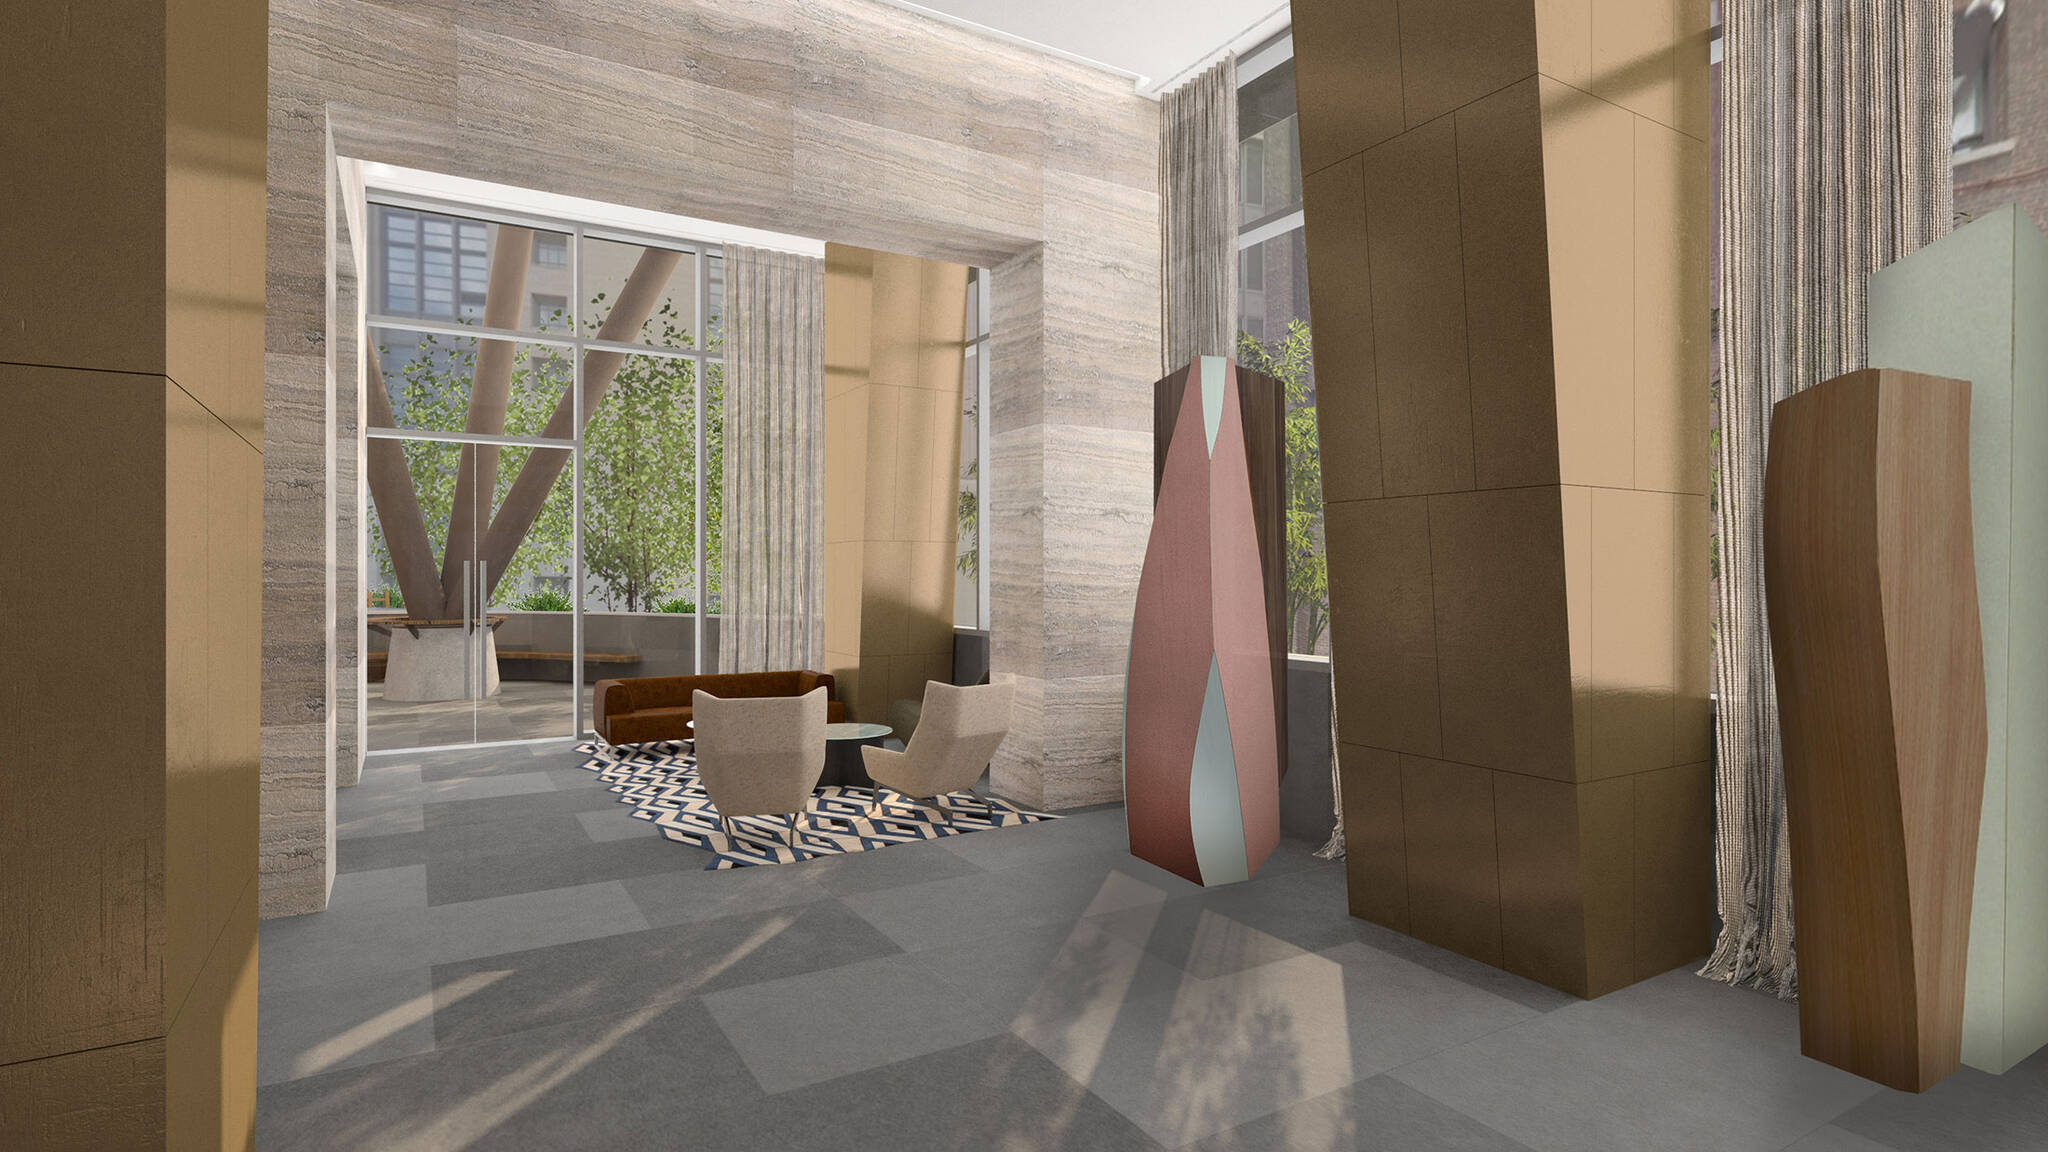 Lobby detail of the Hudson Yards Autograph Hotel project by Marriott, a modular hotel tower located at 432 West 31st Street in Hudson Yards, New York City designed by the architecture studio Danny Forster & Architecture